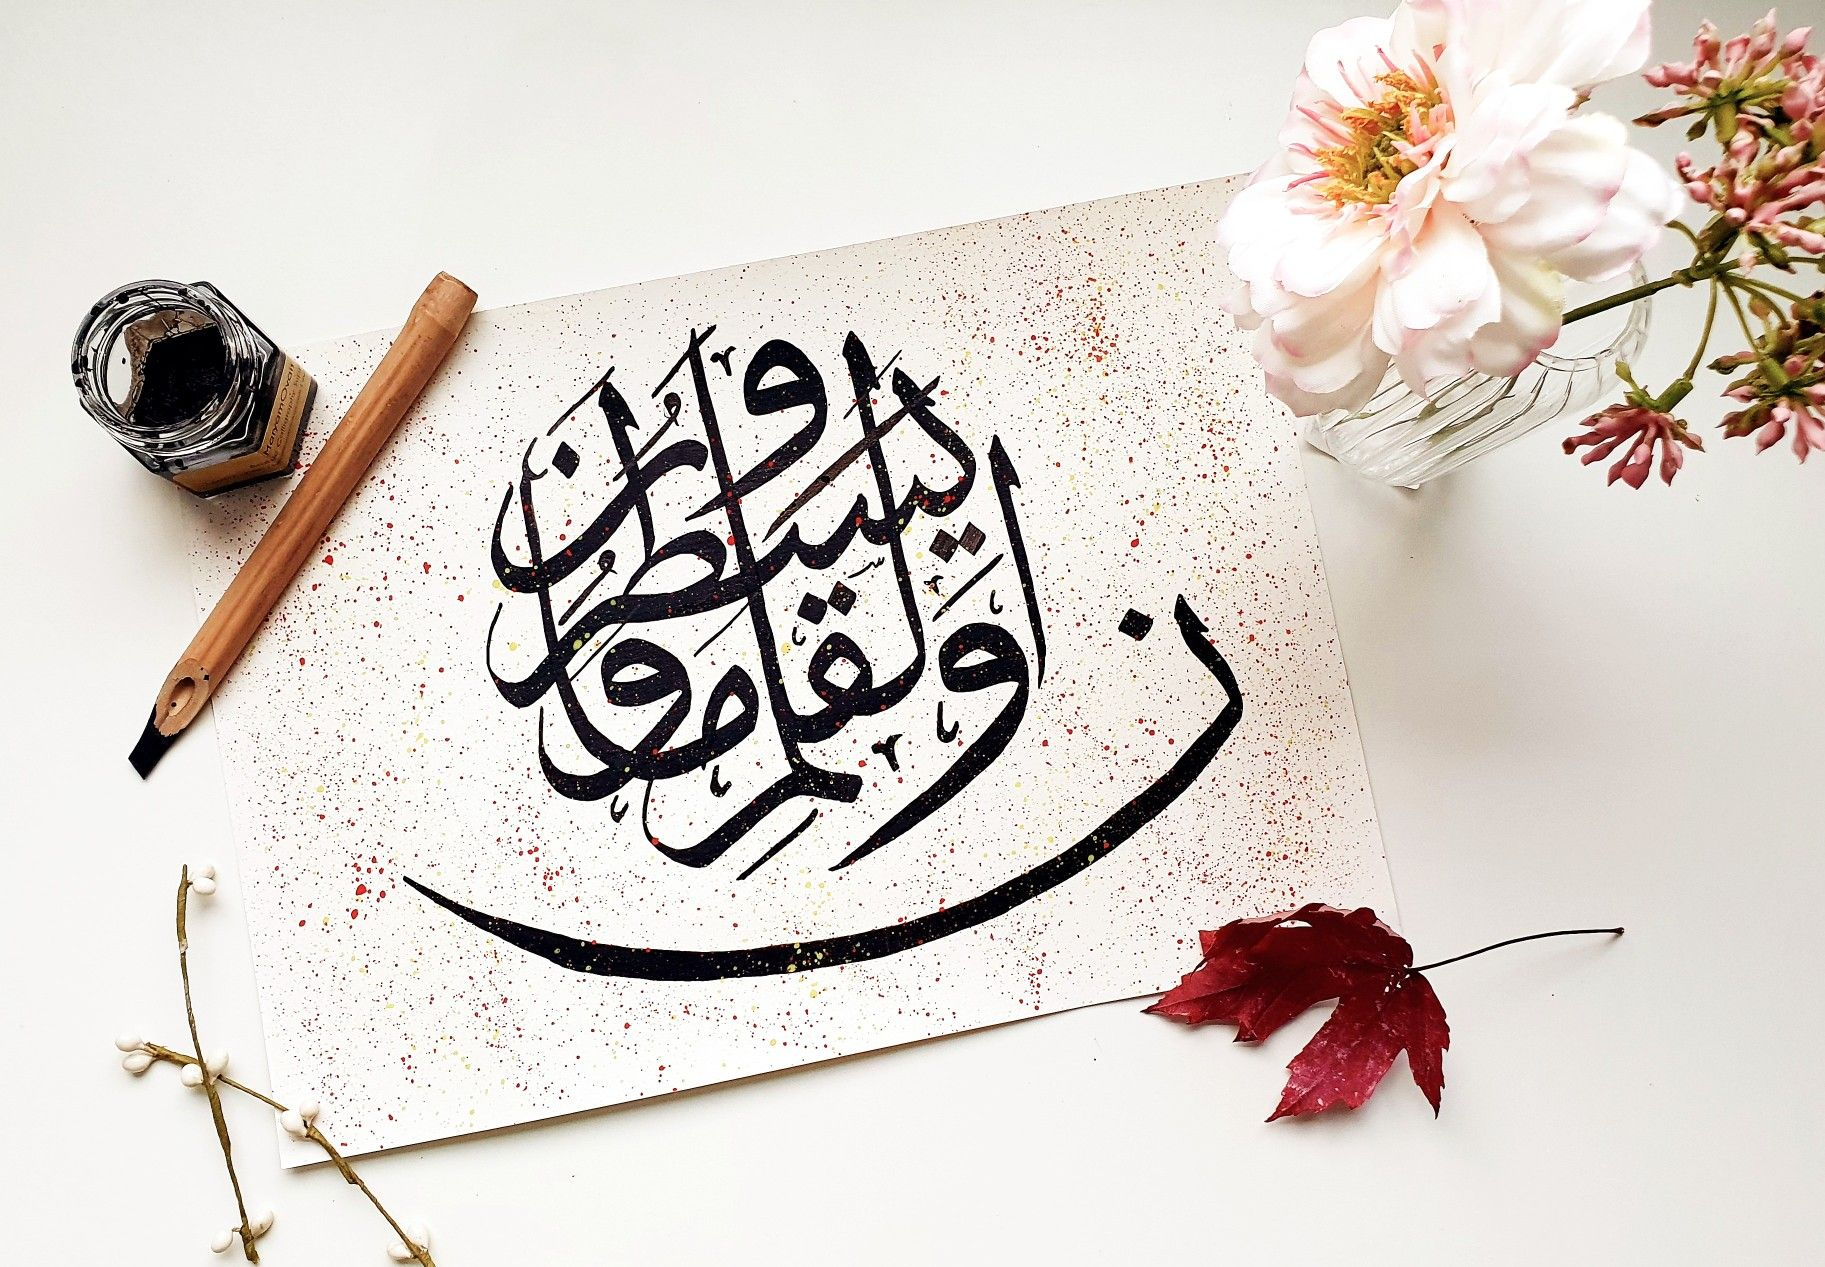 Arabic Calligraphy Painting Noon Wal Qalam In 2020 Arabic Calligraphy Painting Calligraphy Painting Calligraphy